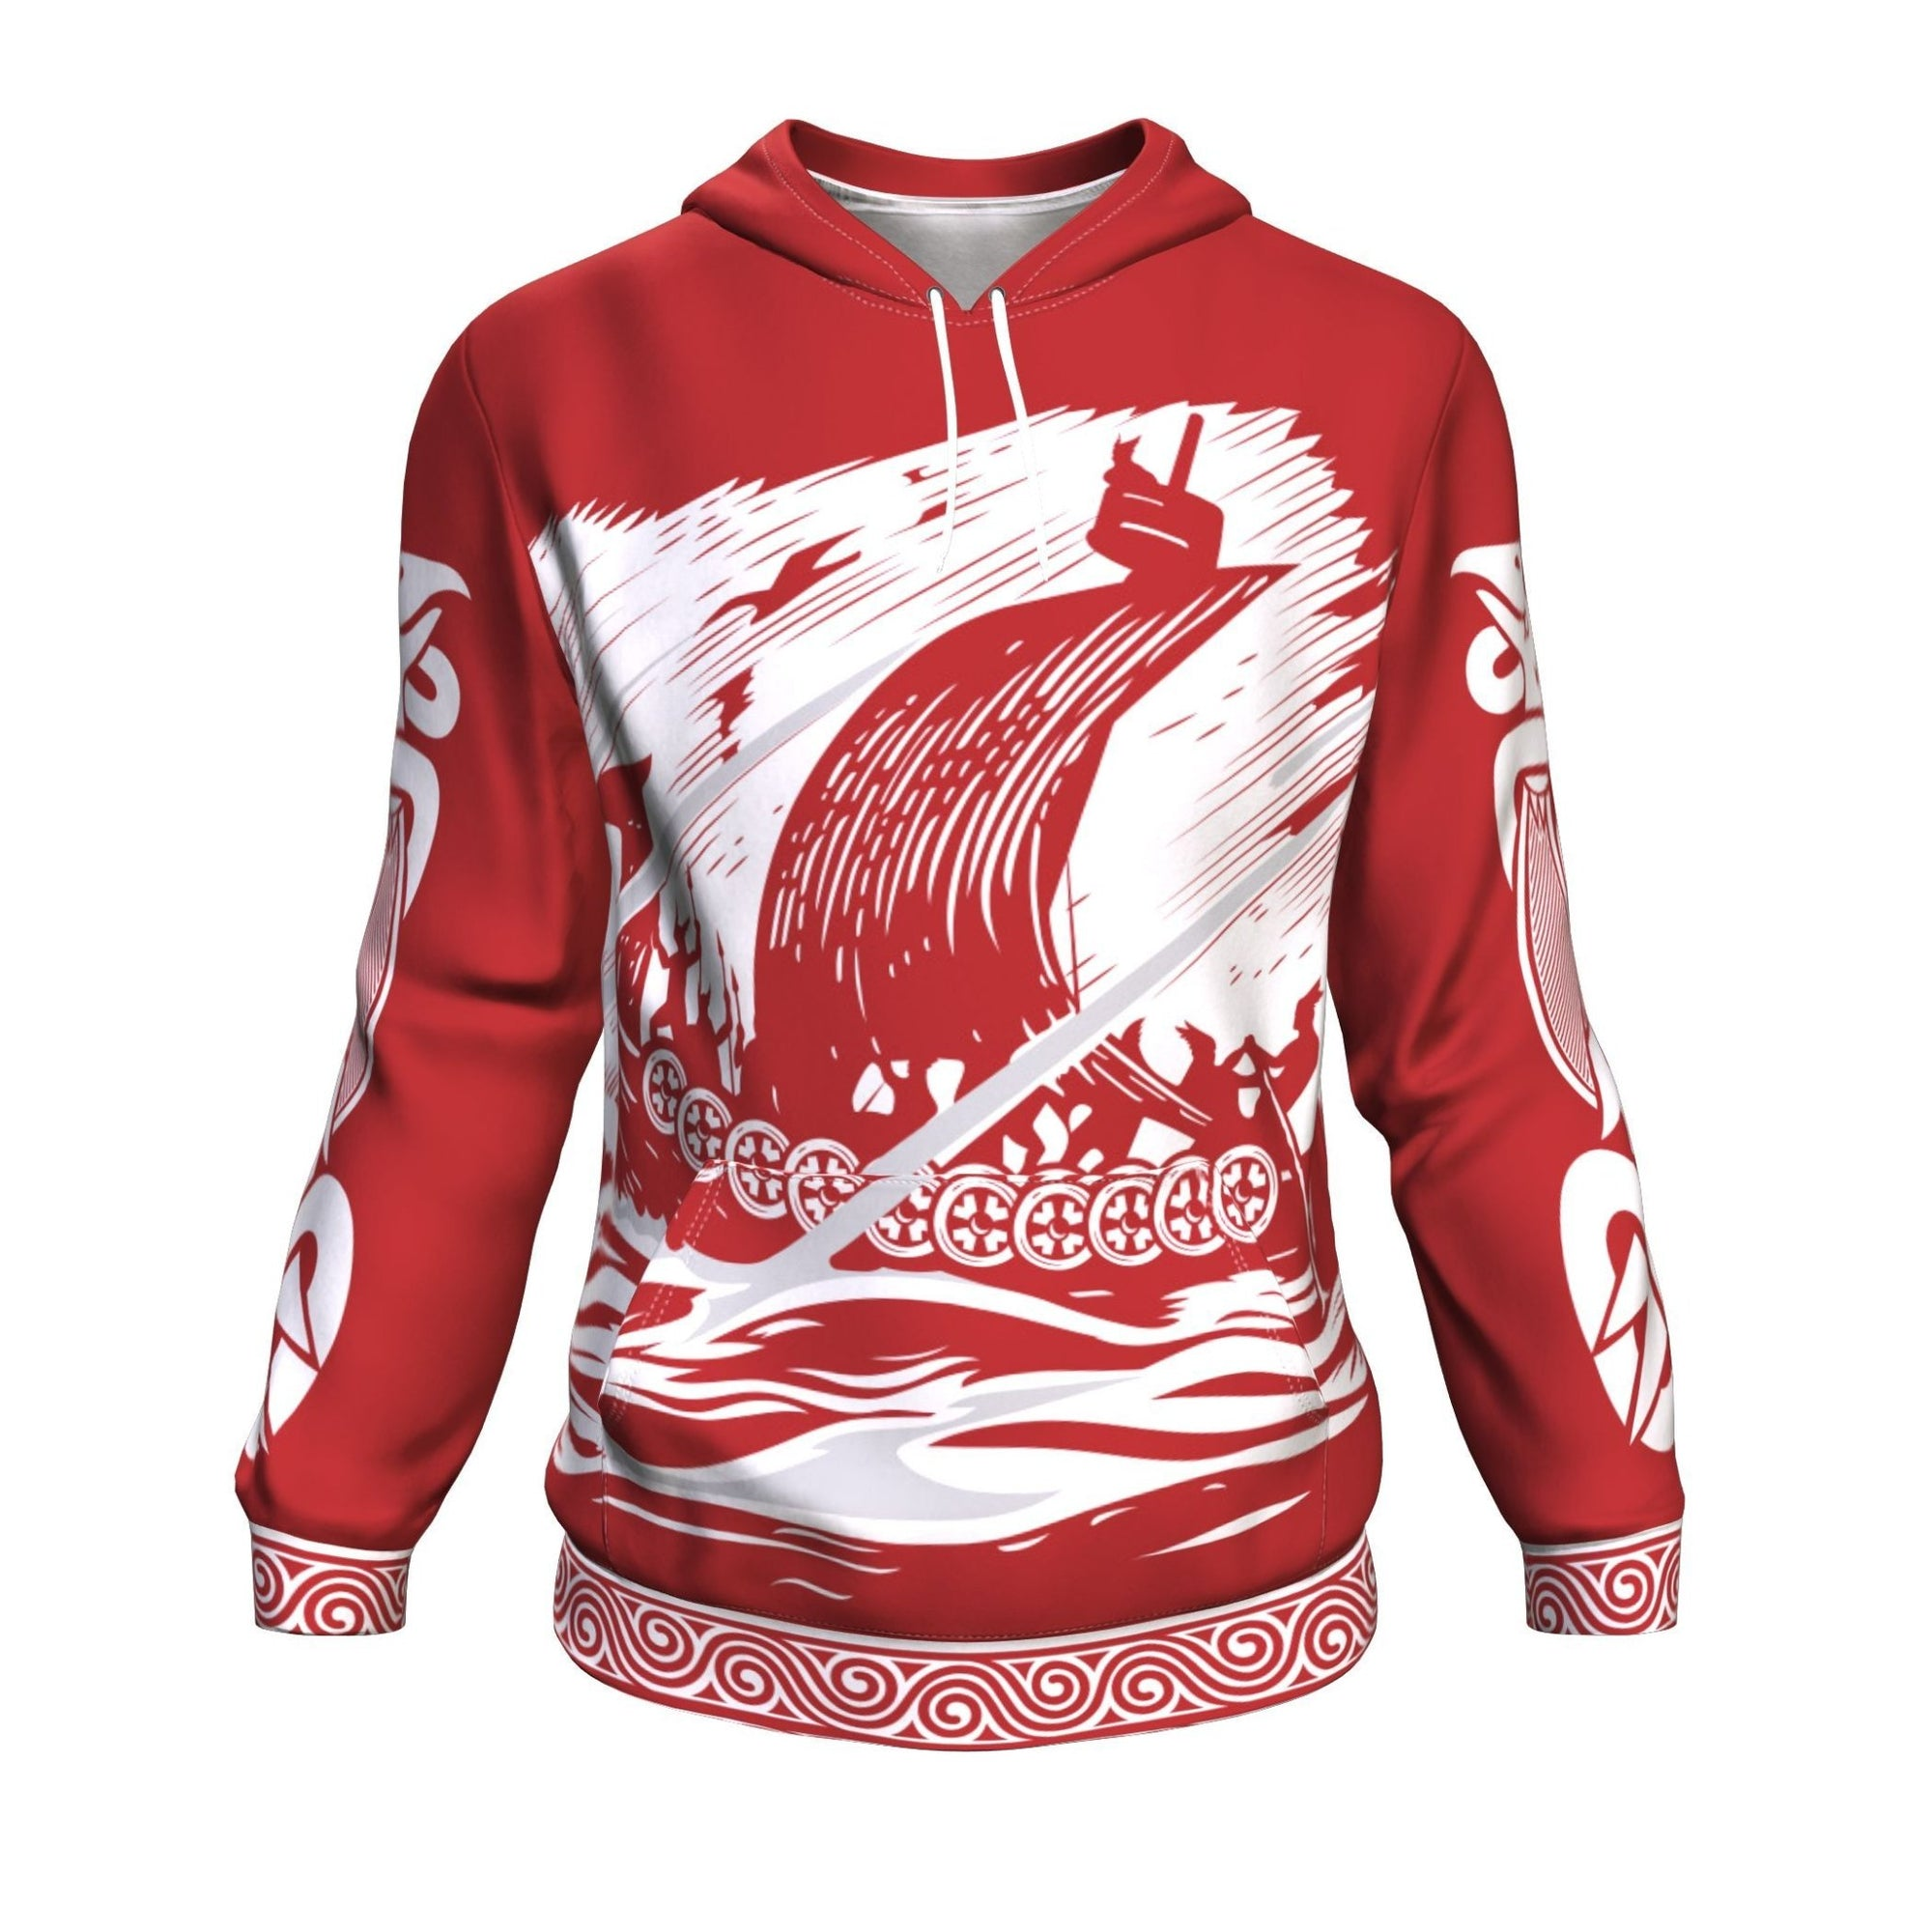 Drakkar Sailing with Viking Warriors Red Hoodie